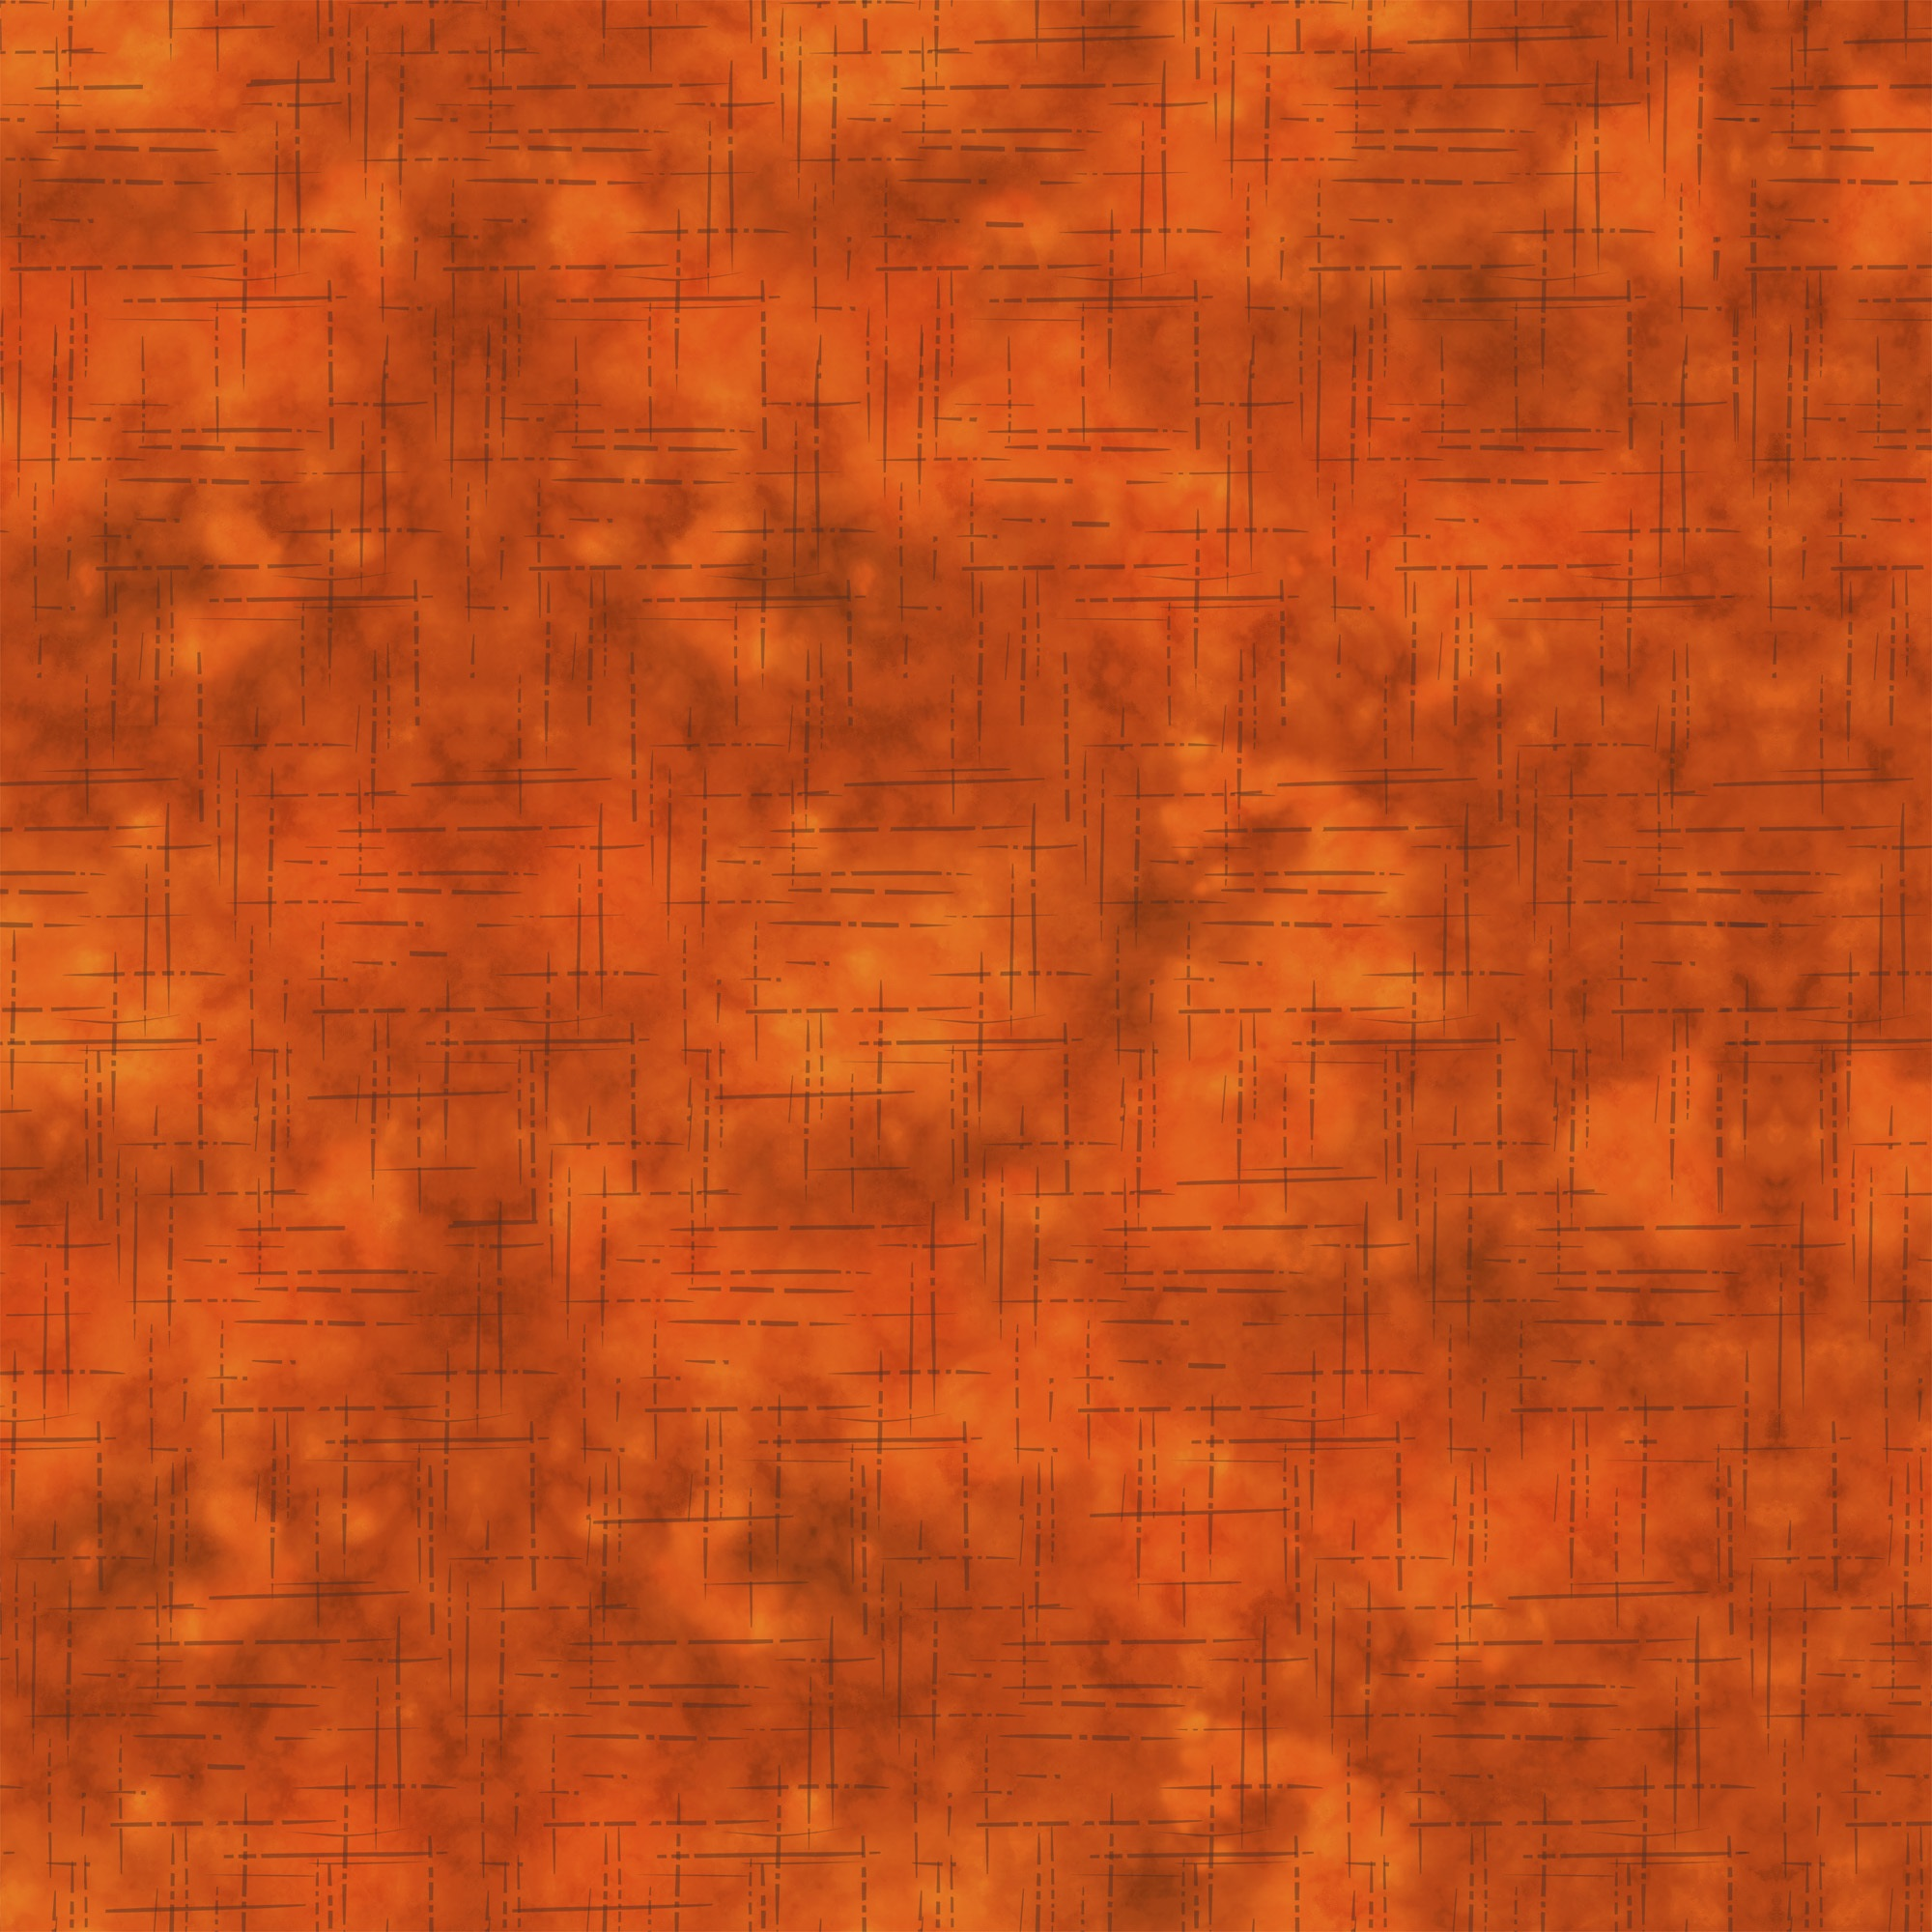 DAVID TEXTILES BLENDER ORANGE COTTON FABRIC BY THE YARD, 44 INCHES WIDE